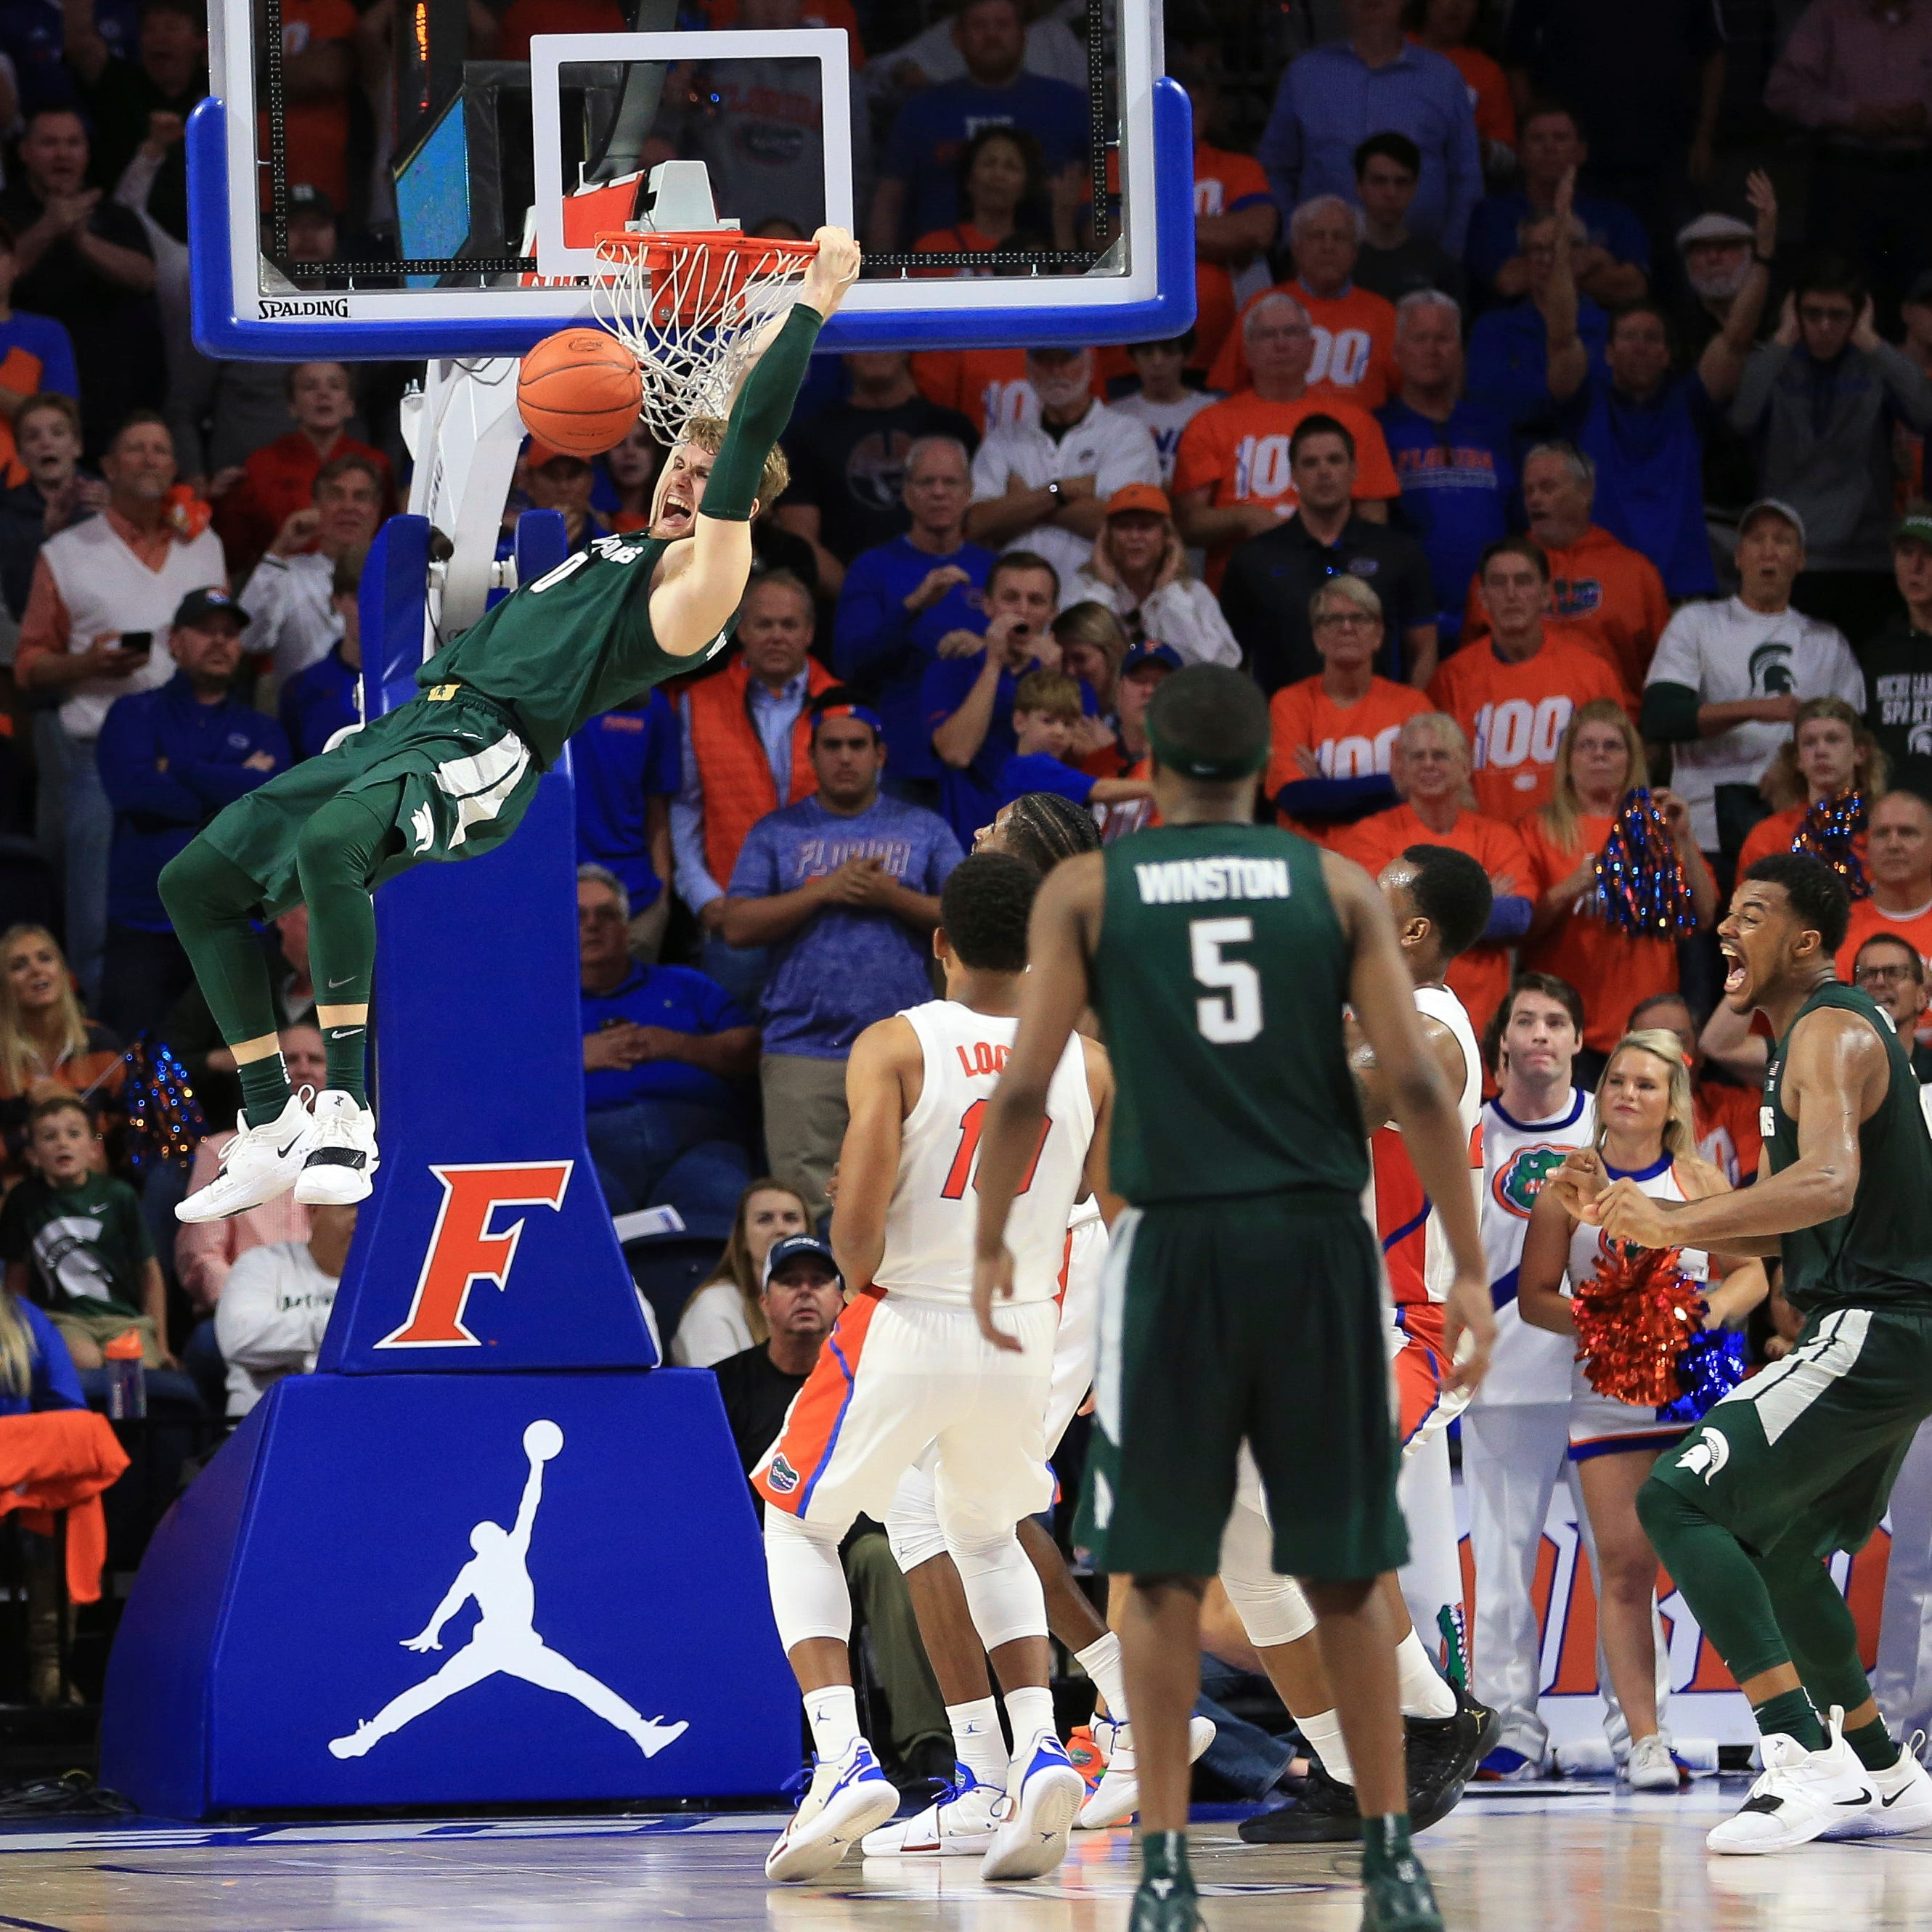 Couch: Kyle Ahrens' game-winning dunk unleashes emotions within